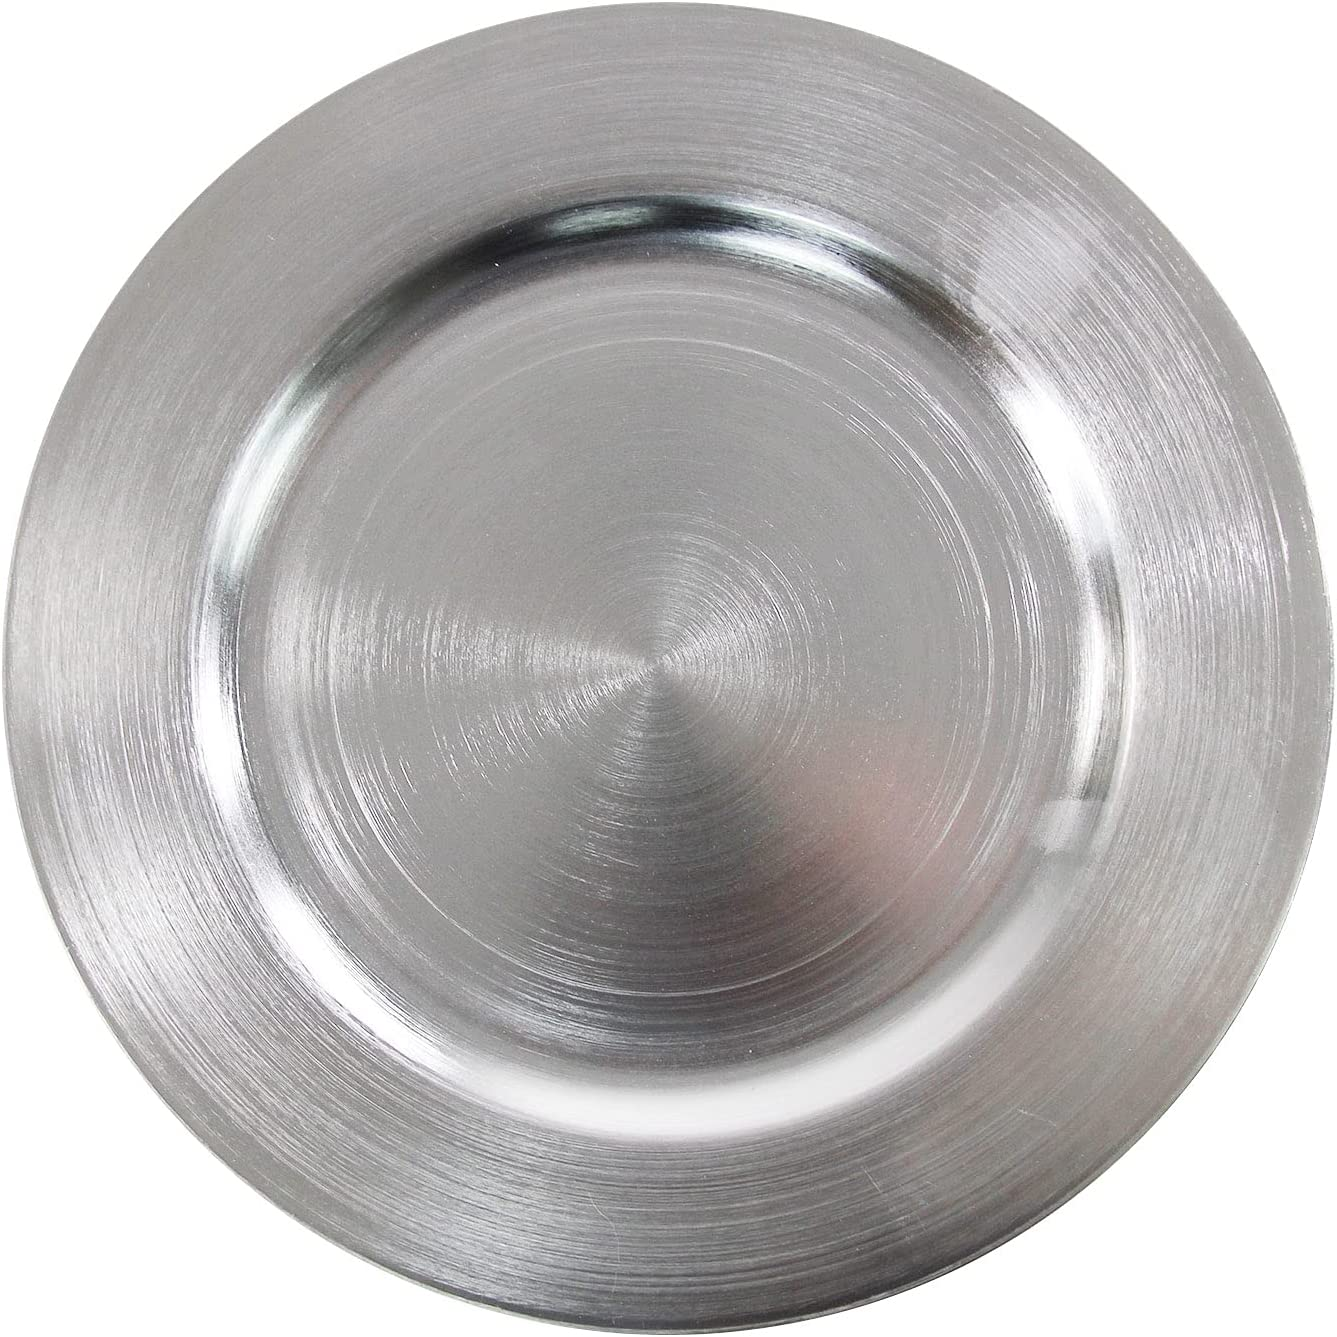 Metallic Silver Charger Plates Rings Free New arrival shipping anywhere in the nation - 13 Plasic 12 Inch pcs Rou